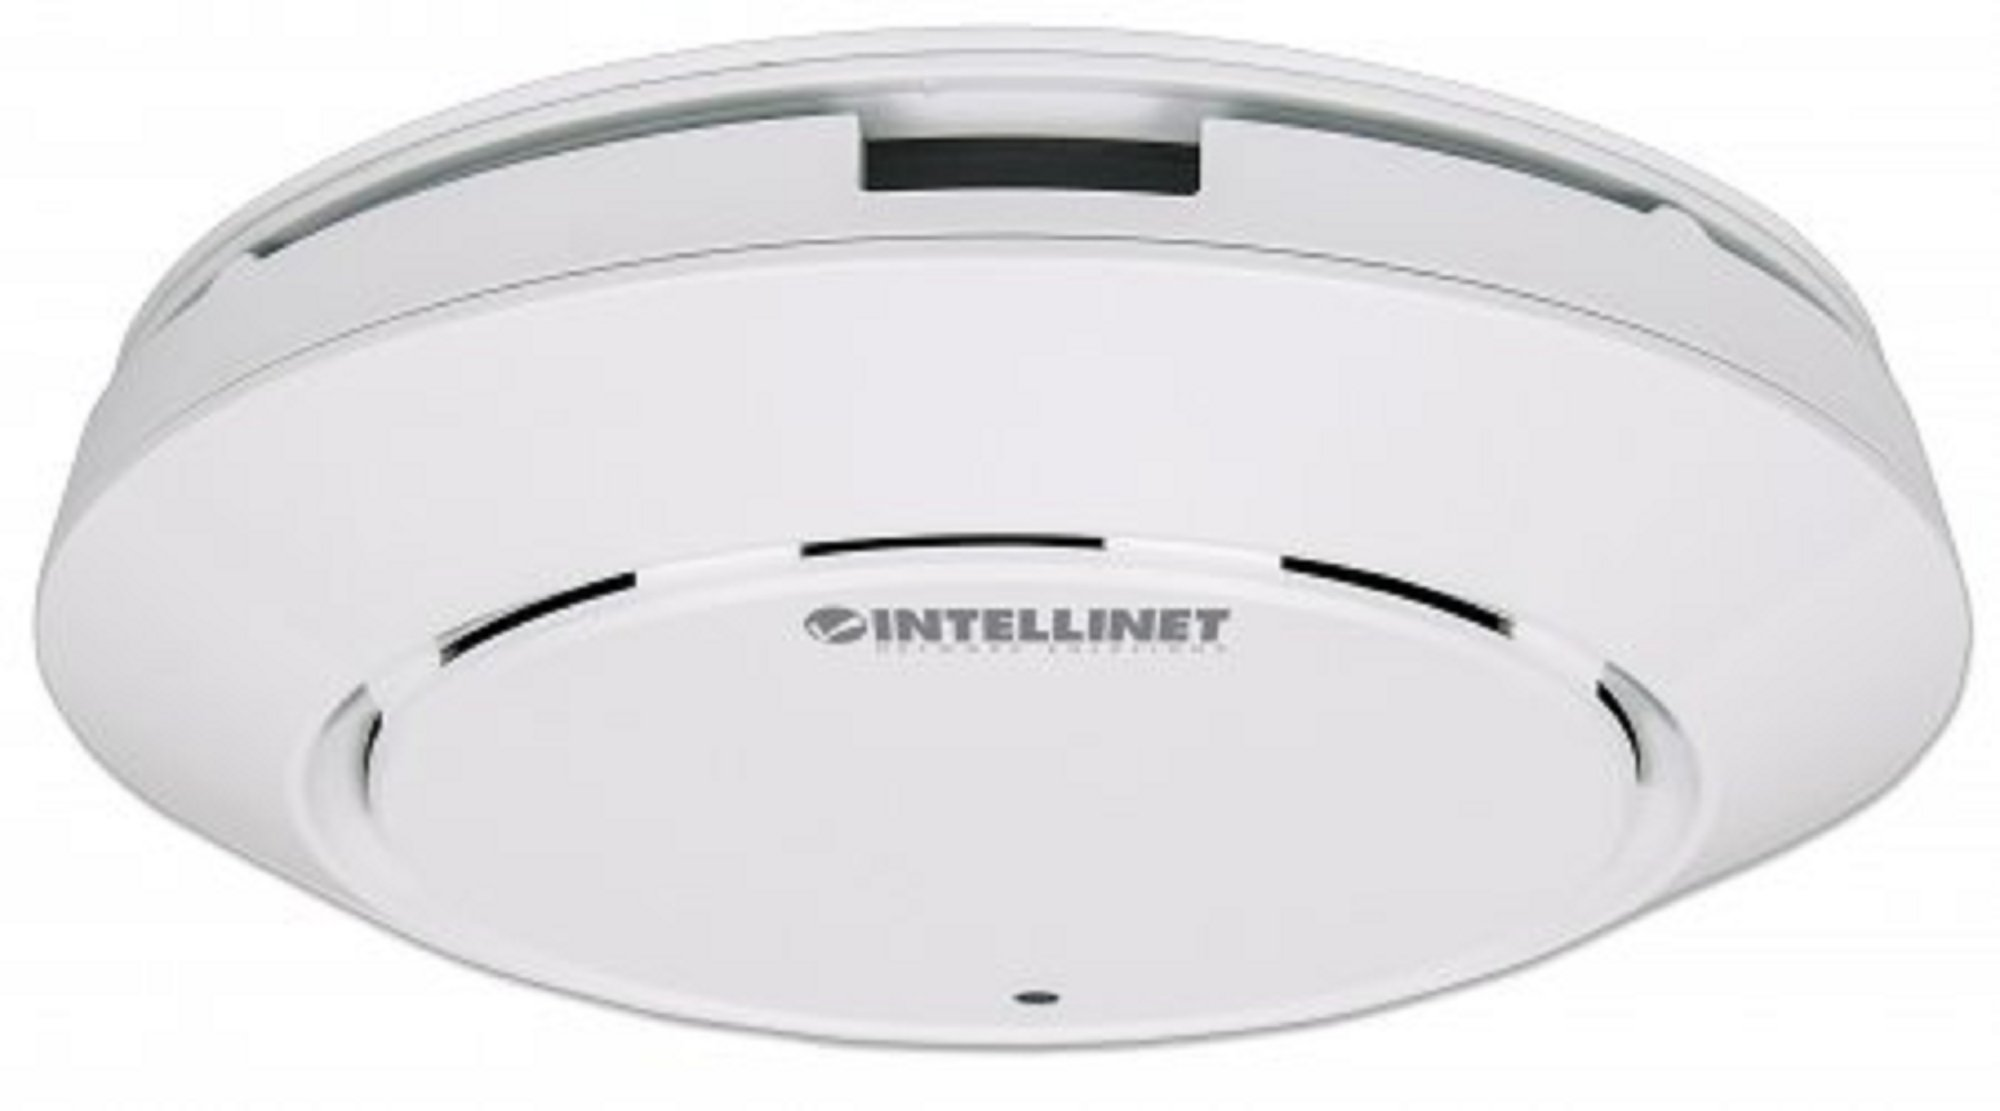 Intellinet 525688 Ieee 802.11ac 1.17 Gbit/s Wireless Access Point - 2.40 Ghz, 5 Ghz - 4 X Antenna[s] - 4 X Internal Antenna[s] - 1 X Network [rj-45] - Poe, Ac Adapter - Ceiling Mountable, Wall